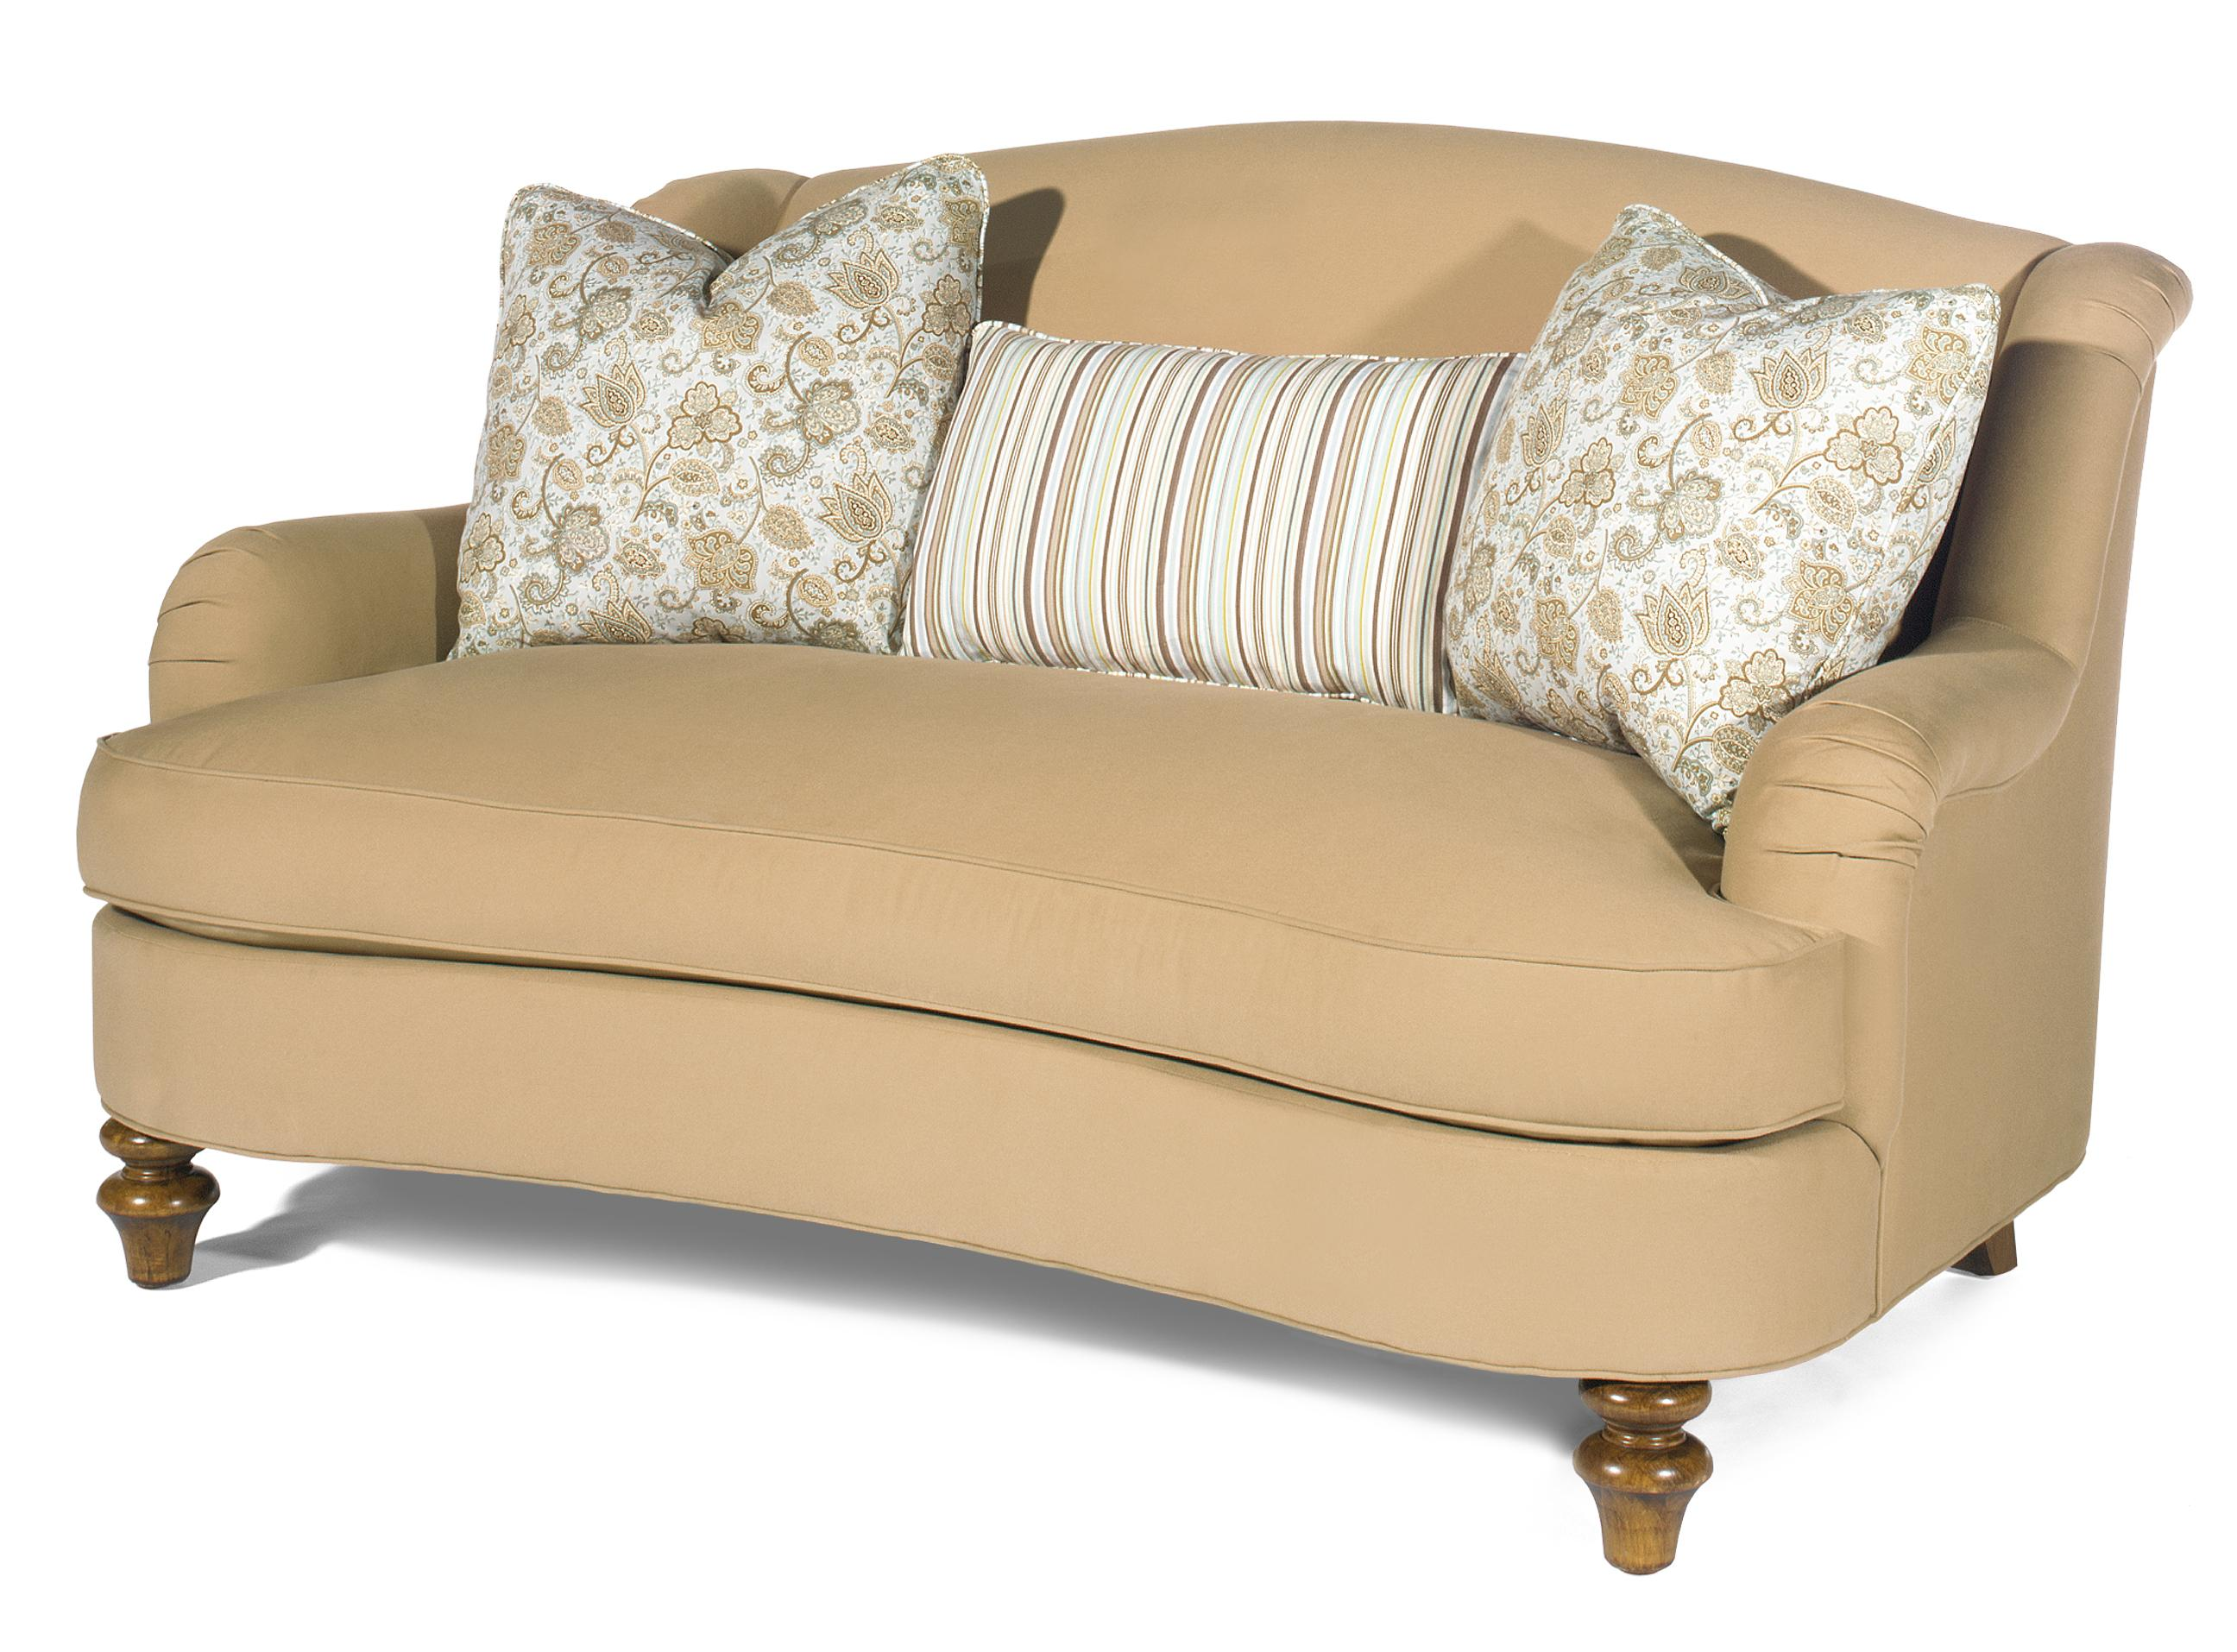 Upholstery Diane Settee by Lexington at Baer's Furniture